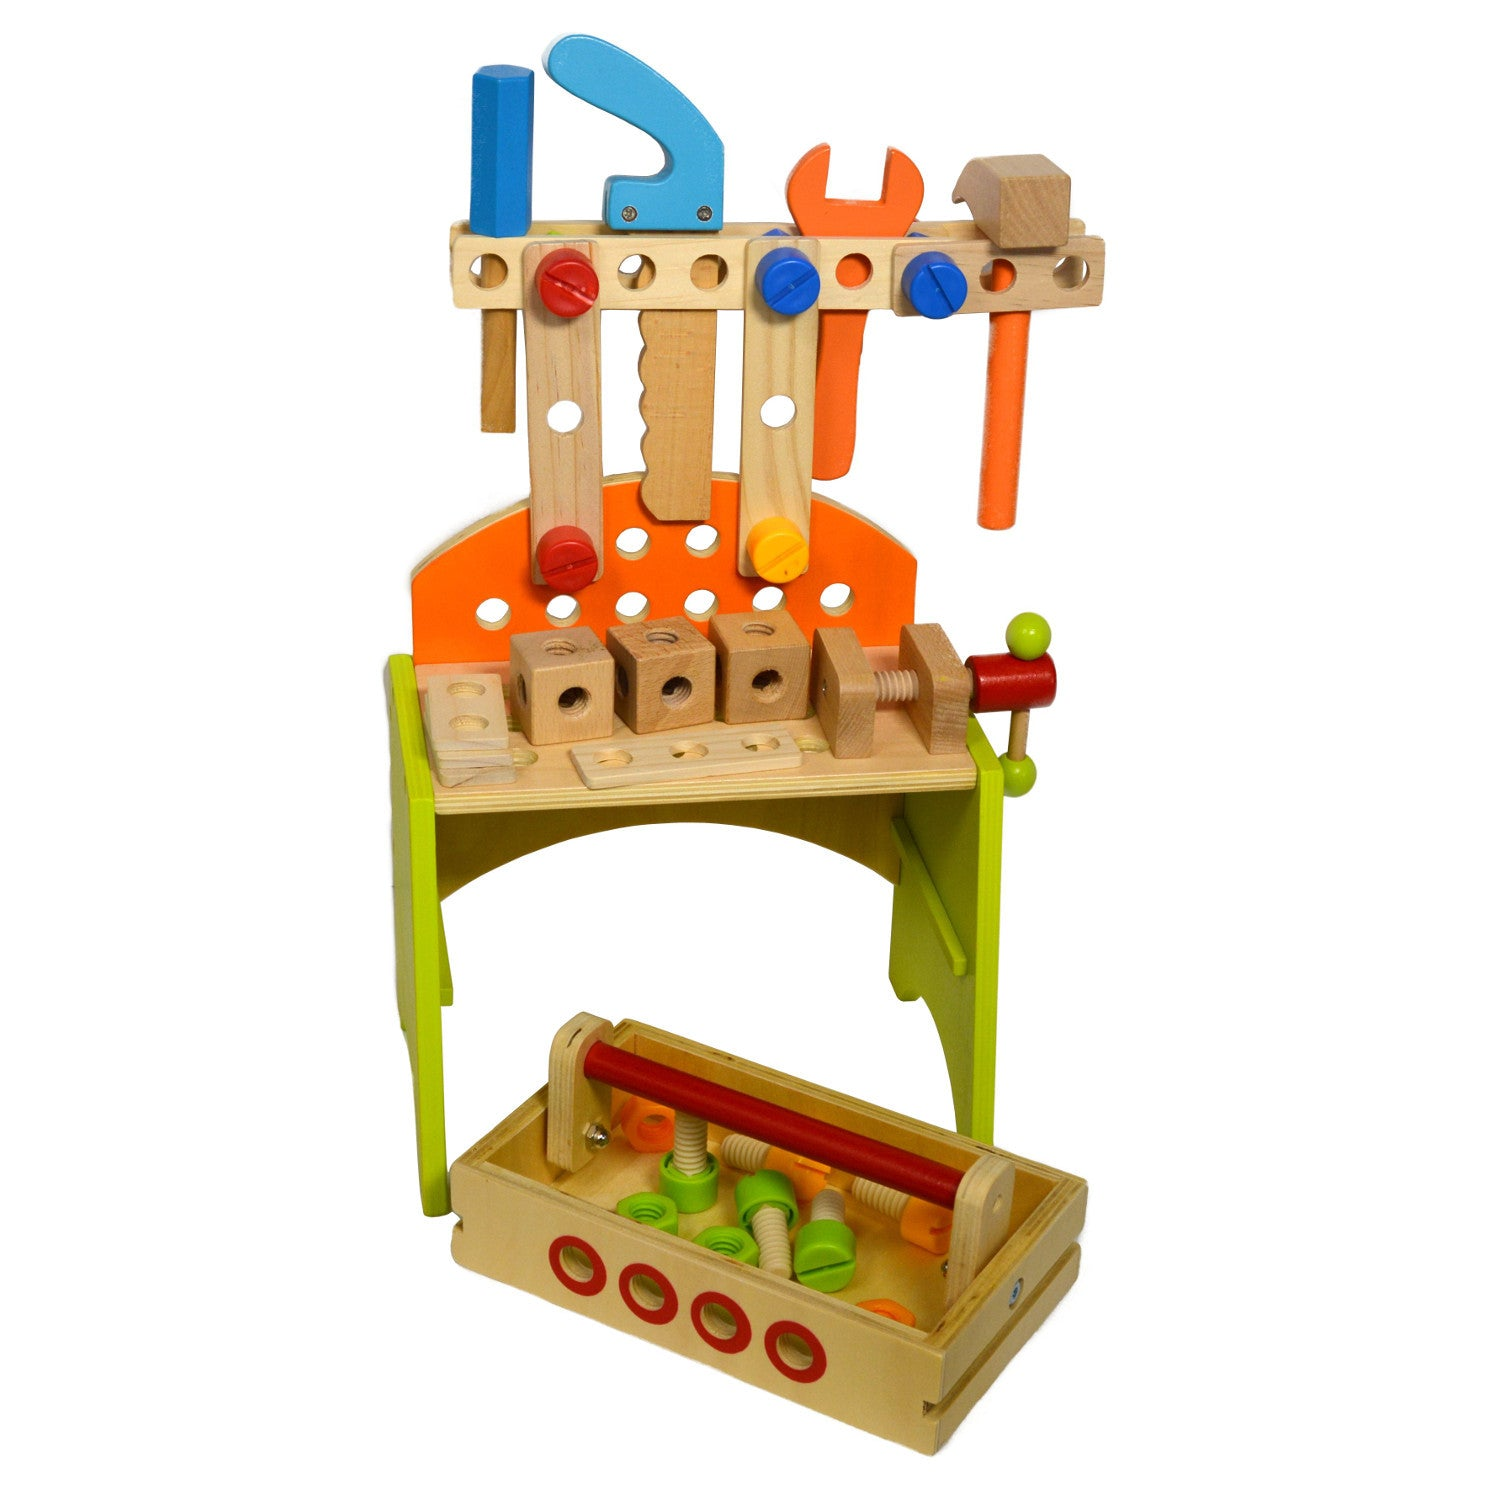 Wooden Toy Diy Workbench Learning Pretend Play Tool Set Small